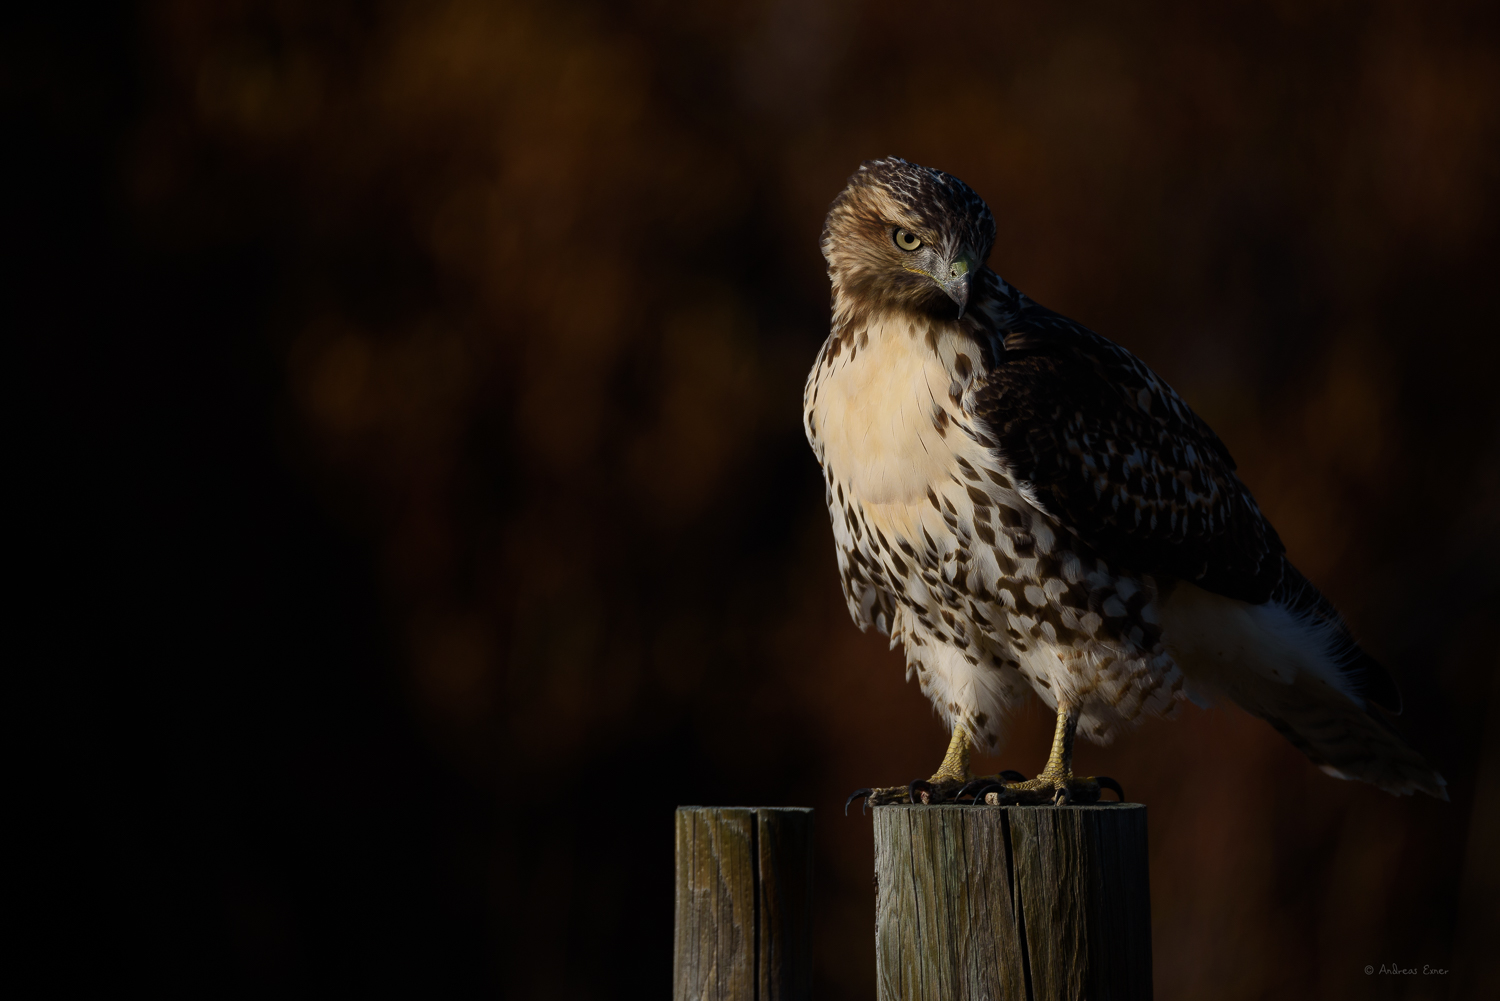 Red-tailed Hawk, North Tongue River, Bighorn Mountains, Wyoming